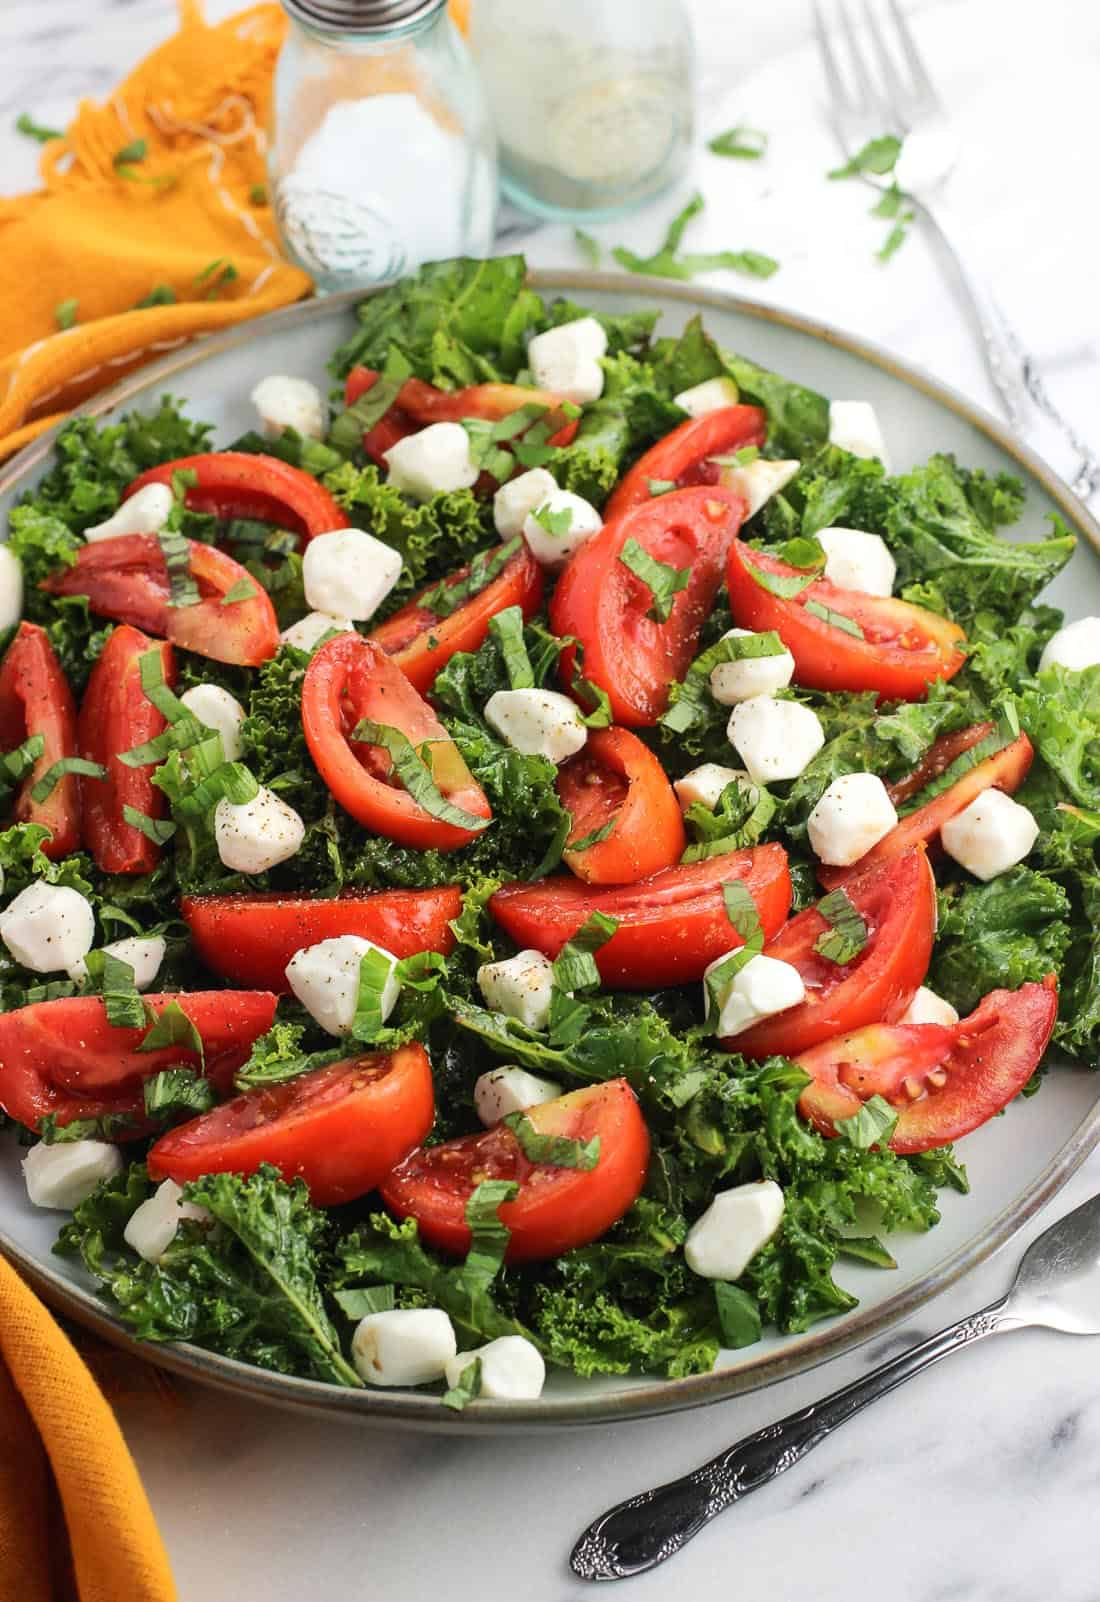 Marinated caprese salad with kale is a simple take on a classic appetizer with a boost of nutrition. Massaging the kale with olive oil and balsamic vinegar tenderizes it so it isn't so tough!